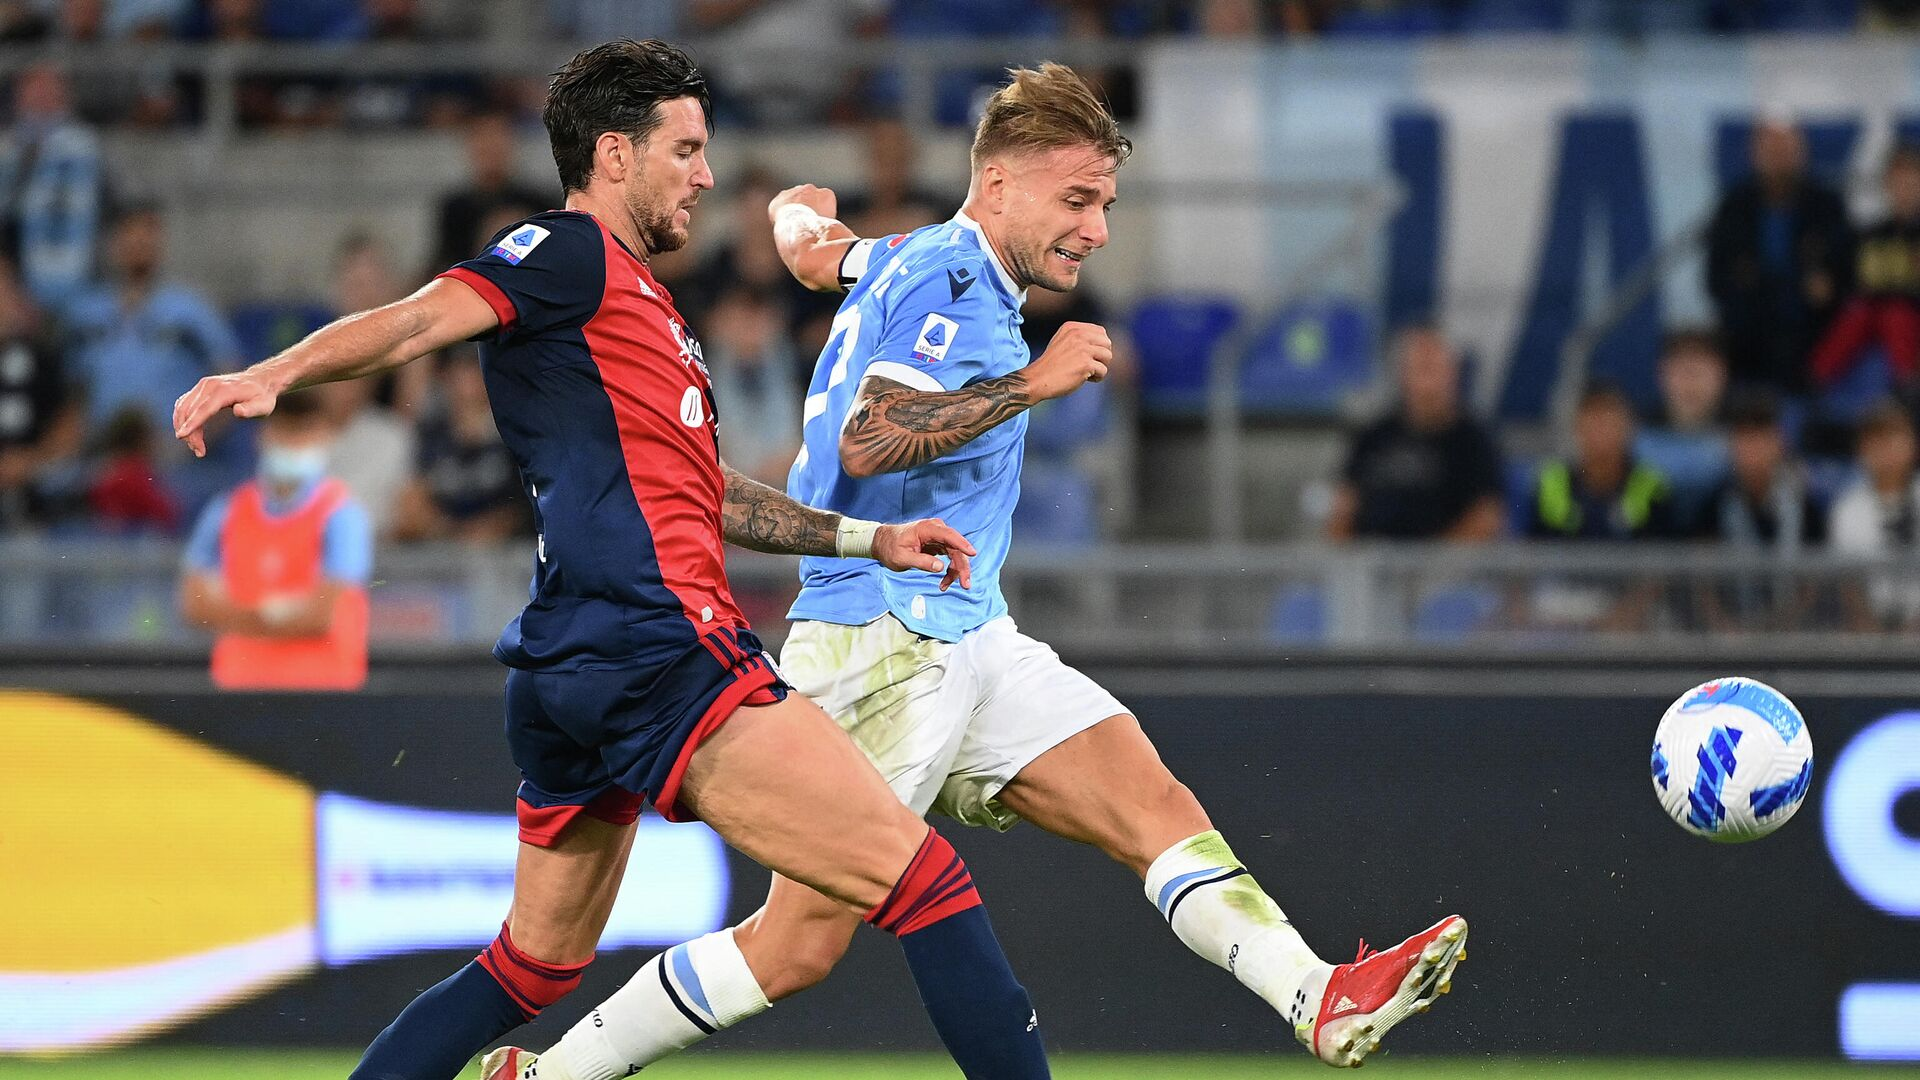 Lazio's Italian forward Ciro Immobile (R) fights for the ball Cagliari's Italian defender Luca Ceppitelli during the Italian Serie A football match between Lazio and Cagliari at the Olympic stadium, in Rome, on September 19, 2021. (Photo by Vincenzo PINTO / AFP) - РИА Новости, 1920, 19.09.2021